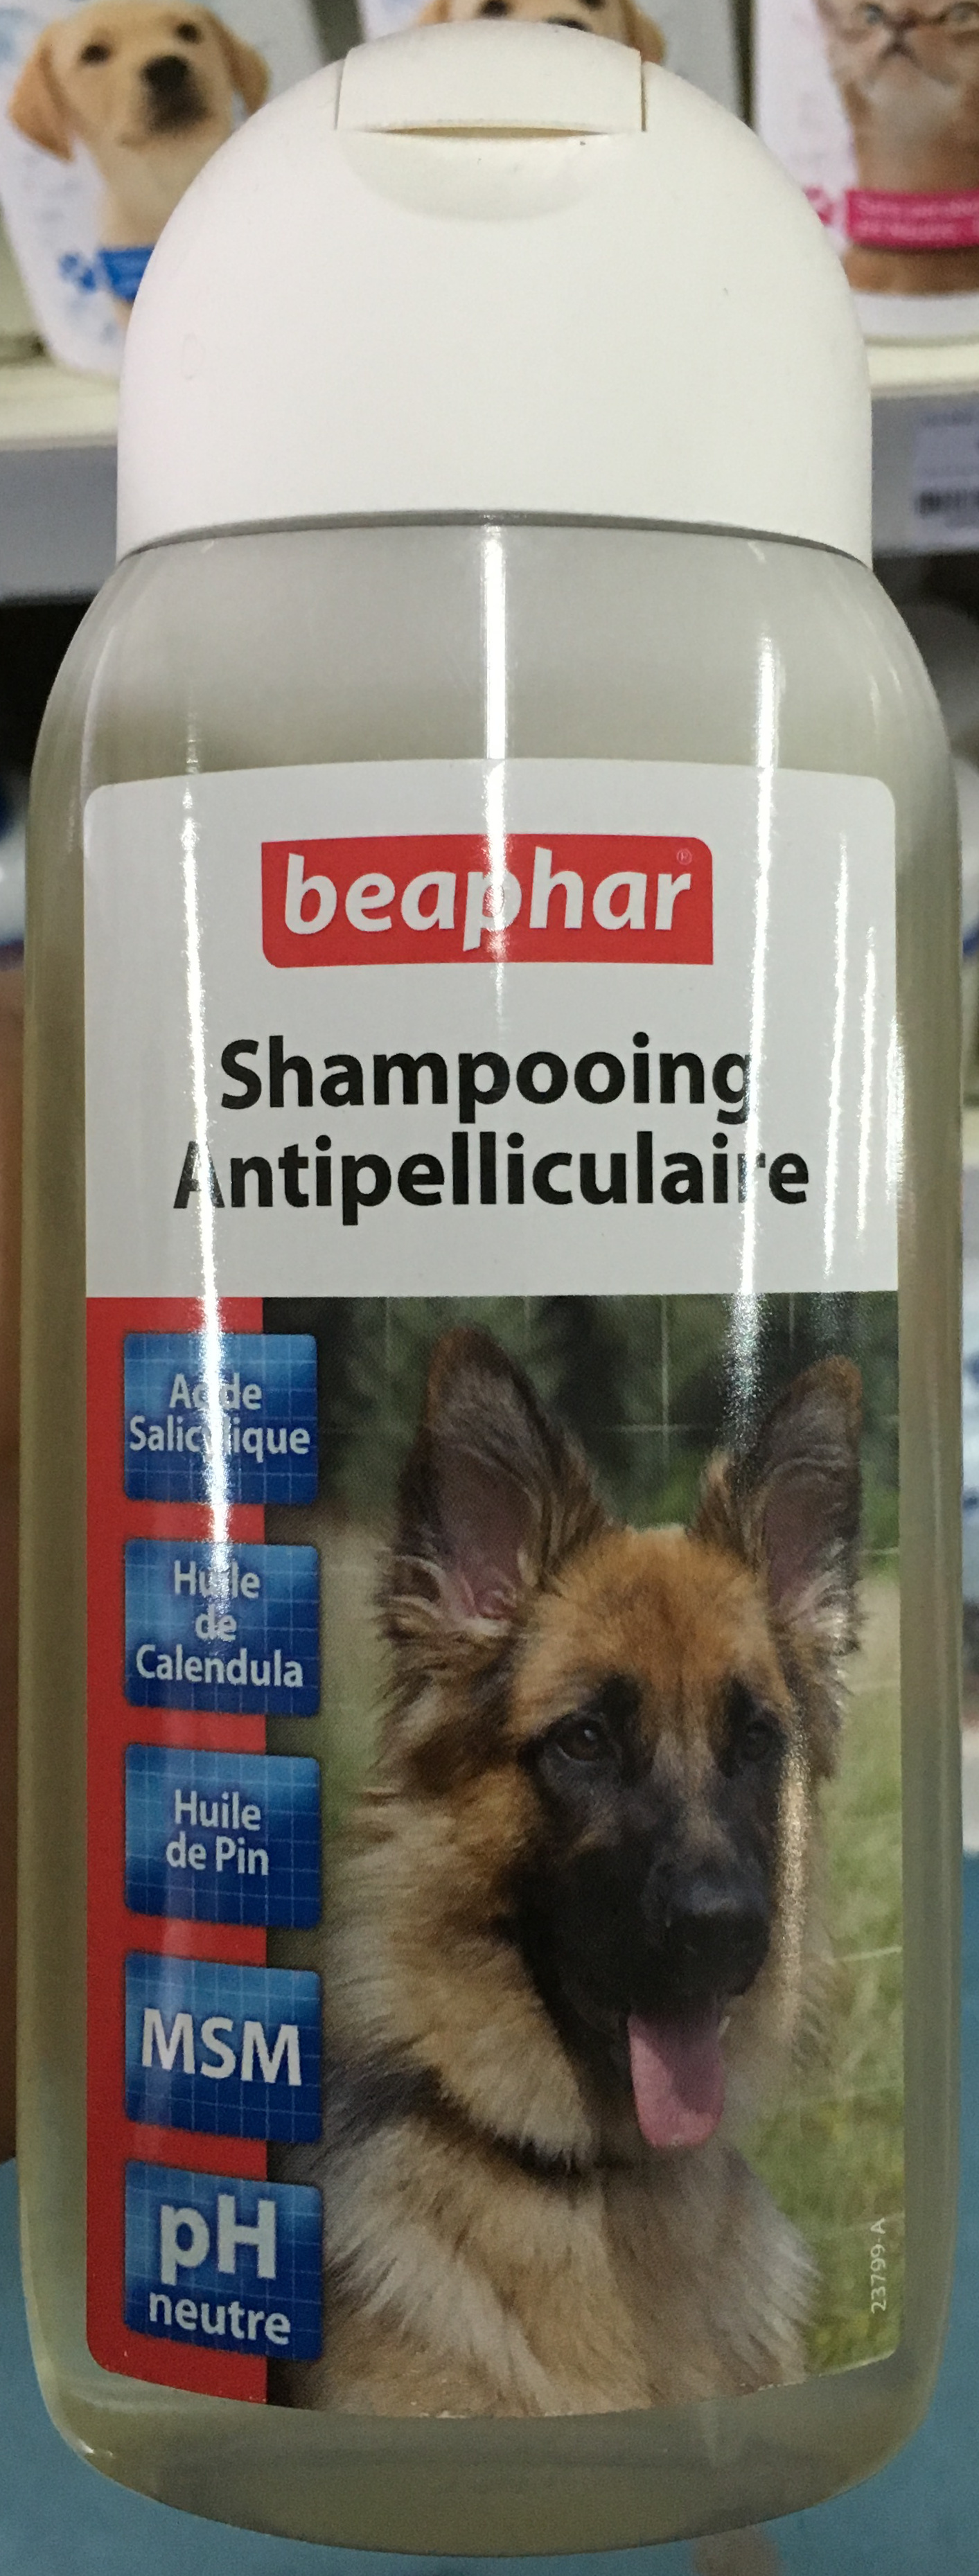 Shampooing antipelliculaire - Produit